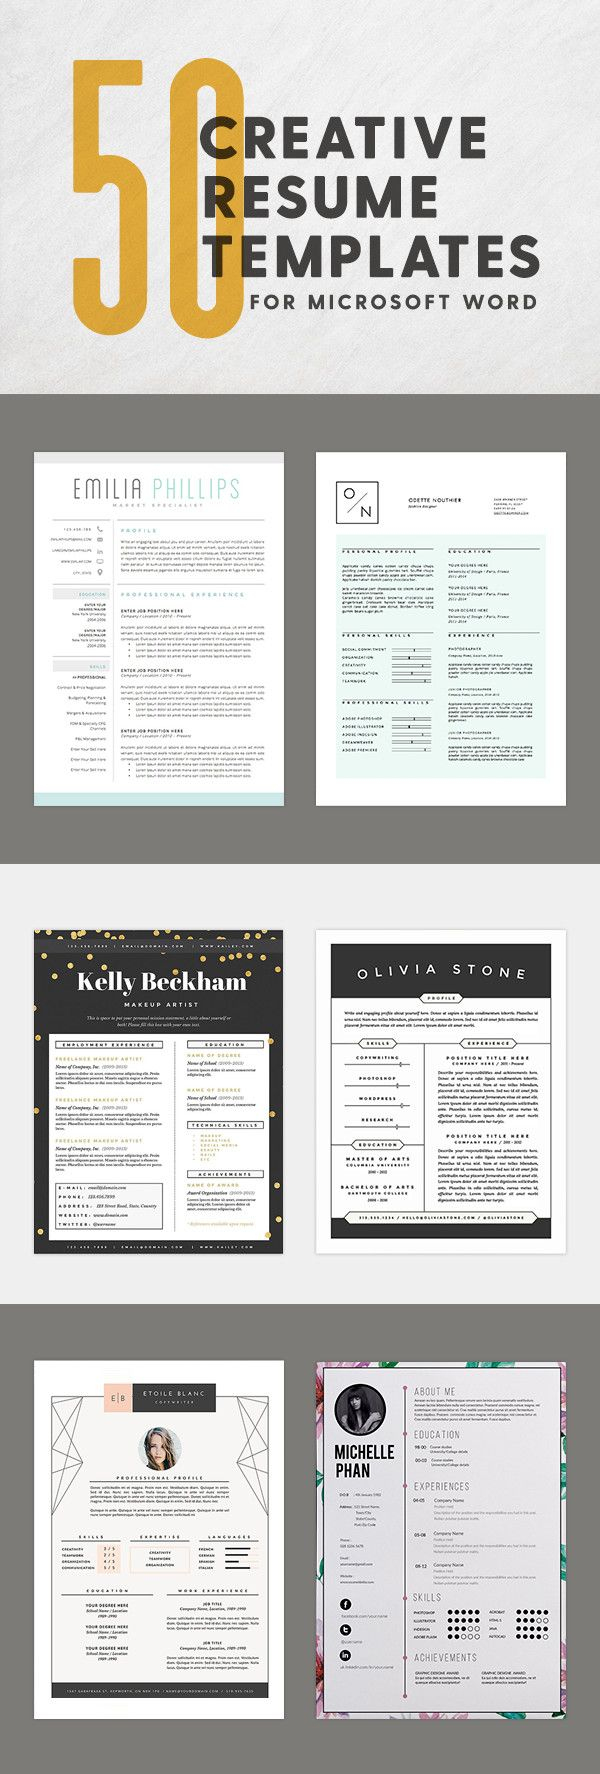 Designed Resumes Word Best  Resume Format Ideas On Pinterest  Job Cv Job Resume And  Social Work Resume Objective Statements with Resumé Template  Creative Resume Templates You Wont Believe Are Microsoft Word Resume For Security Officer Pdf